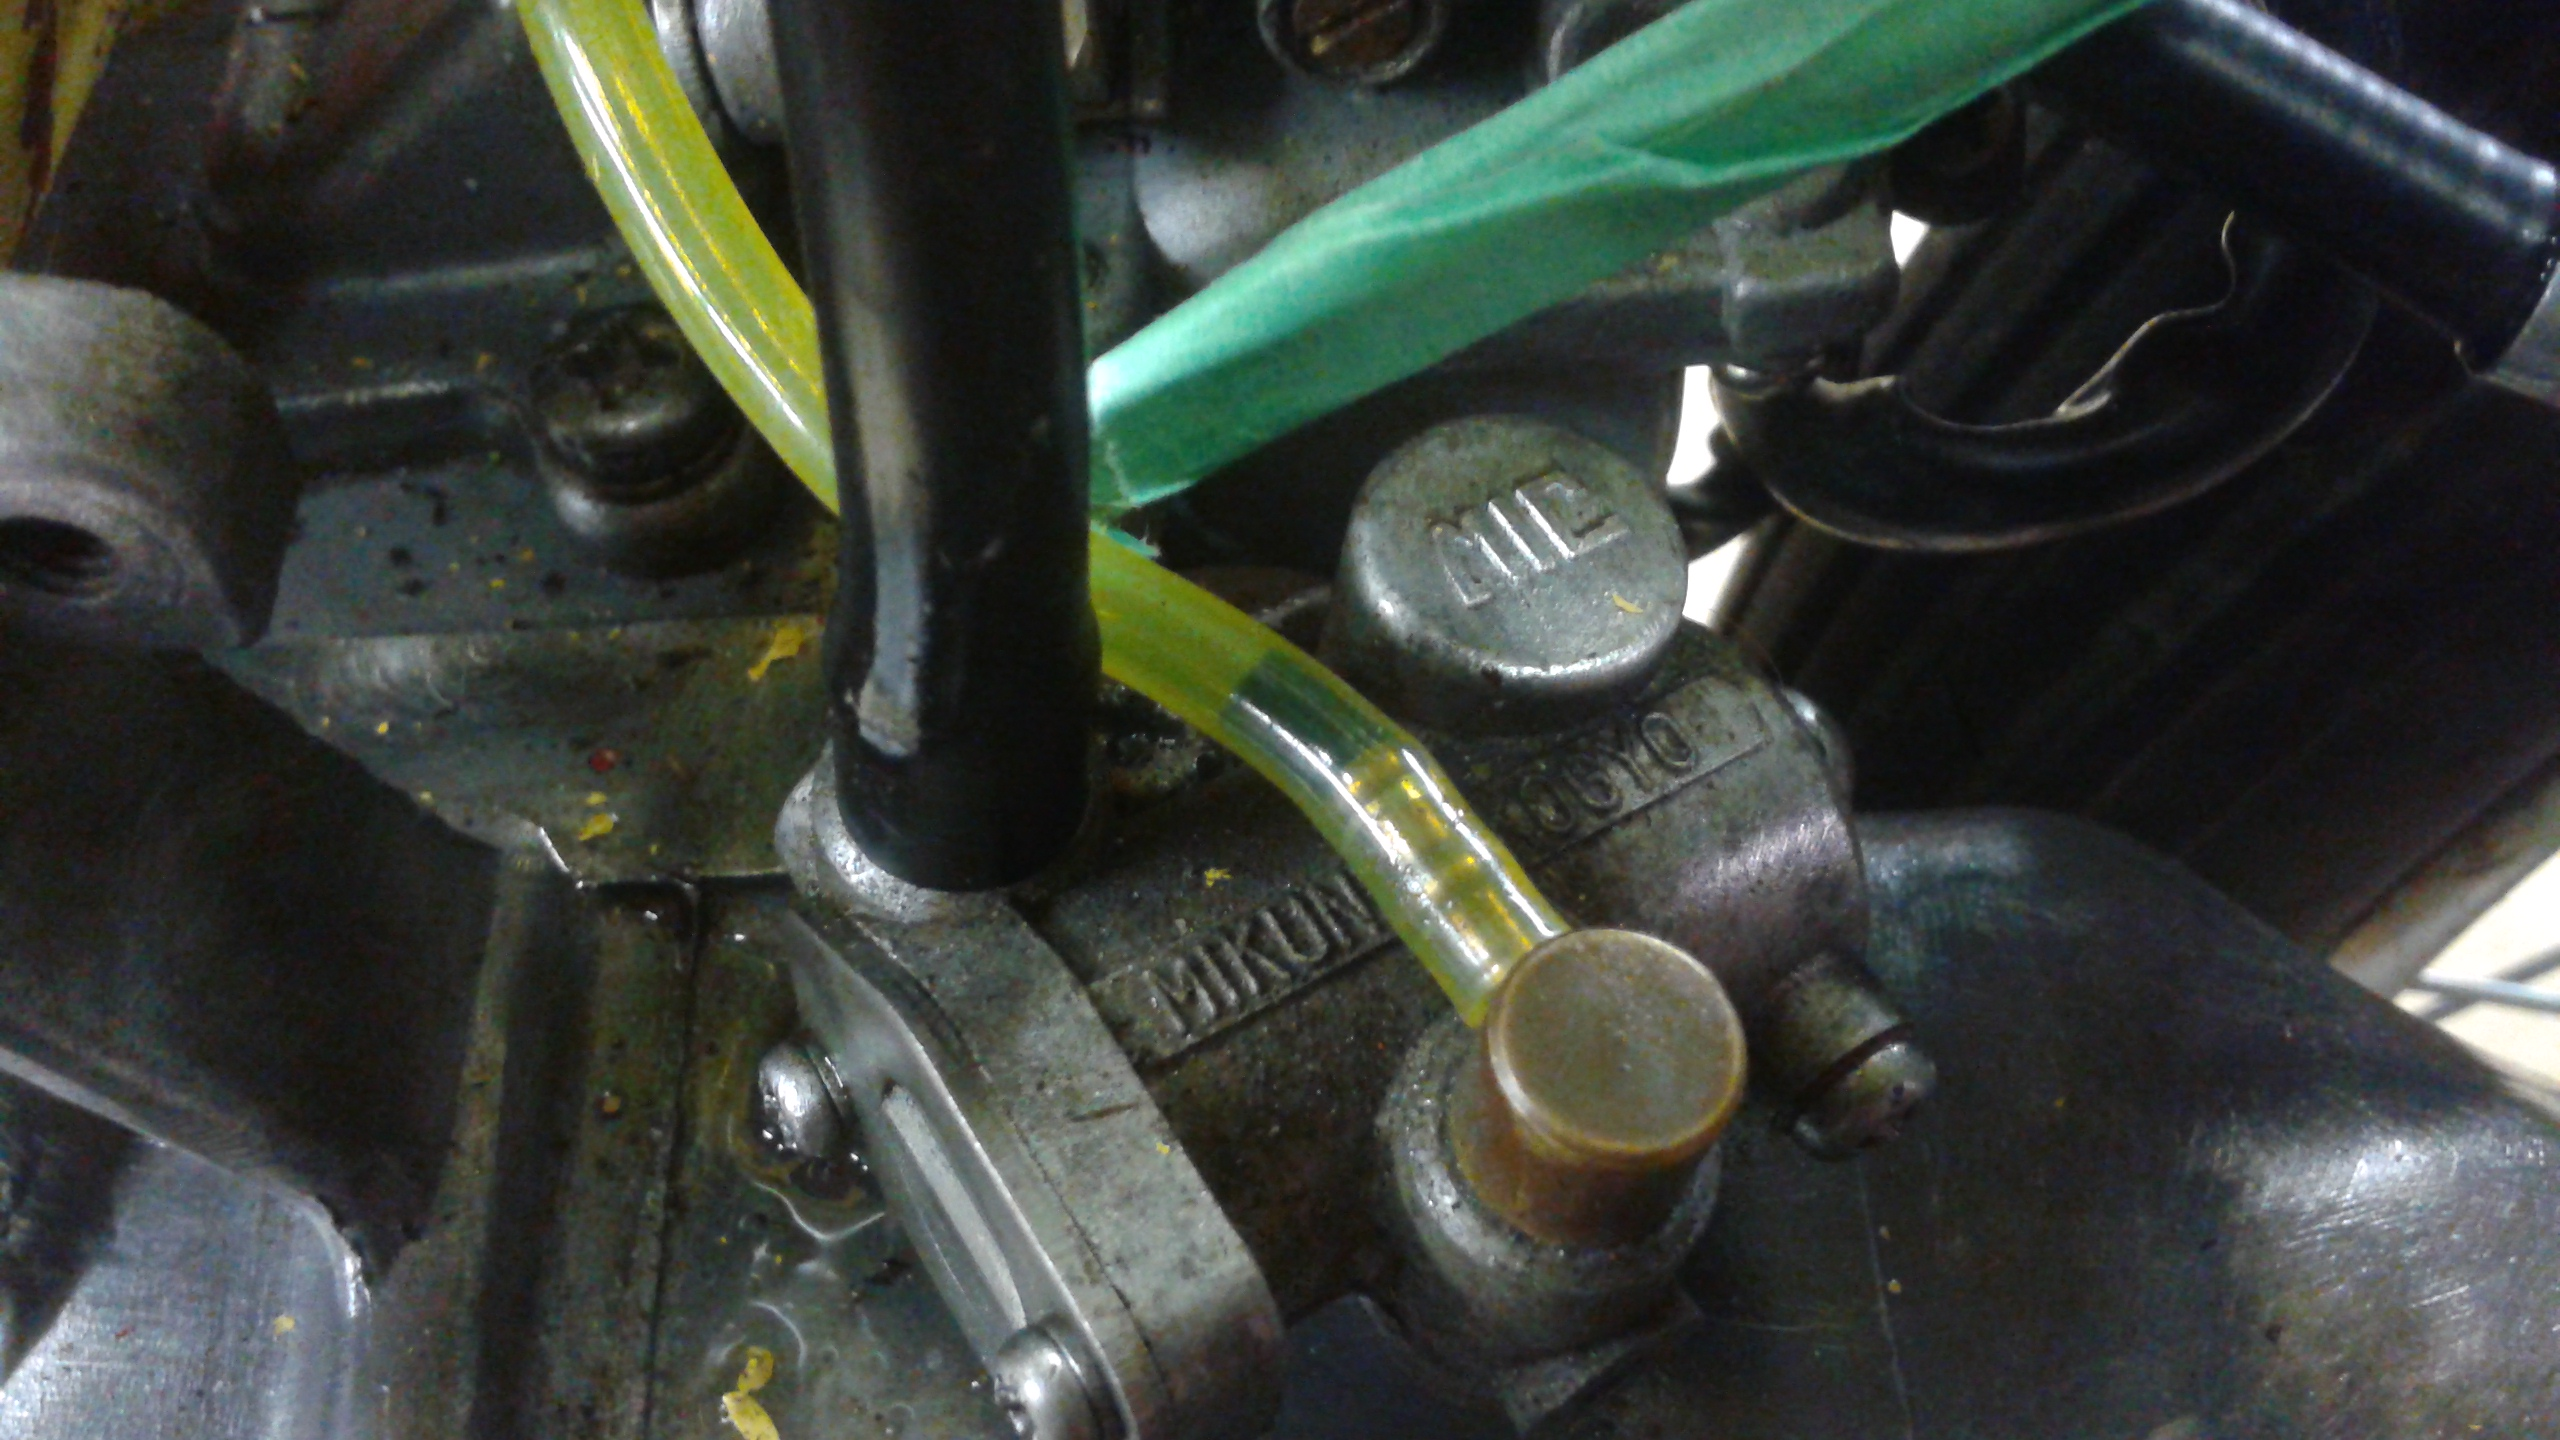 1981 Suzuki Fa50 - bad fuel leak, with fuel in one line only